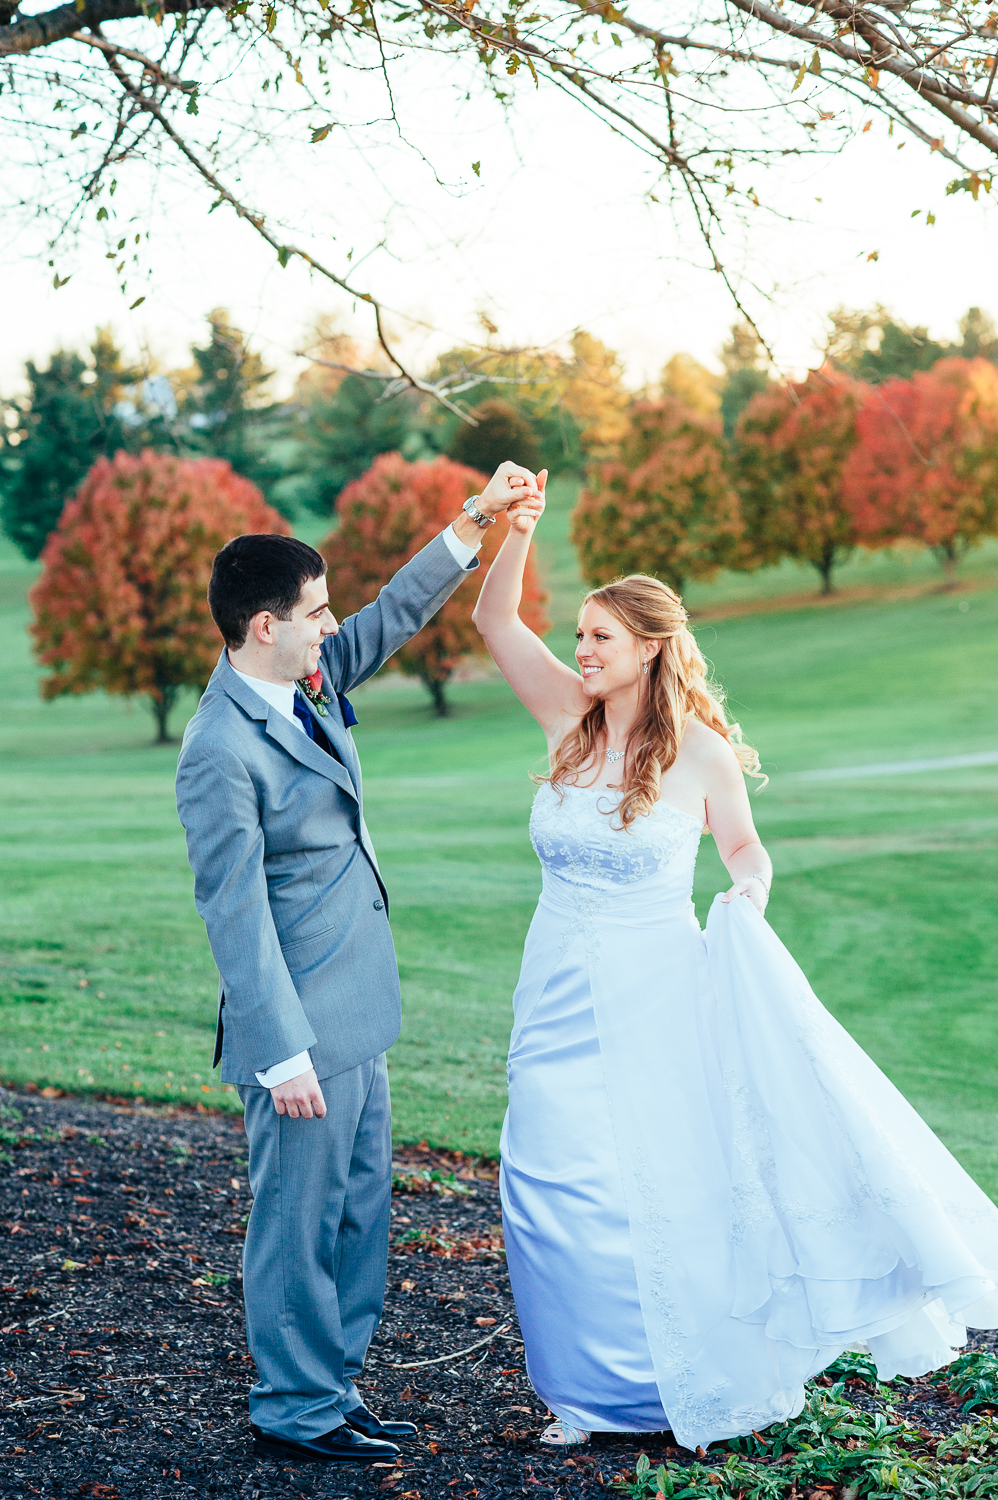 romantic-fall-wedding-piney-branch-maryland-1.jpg